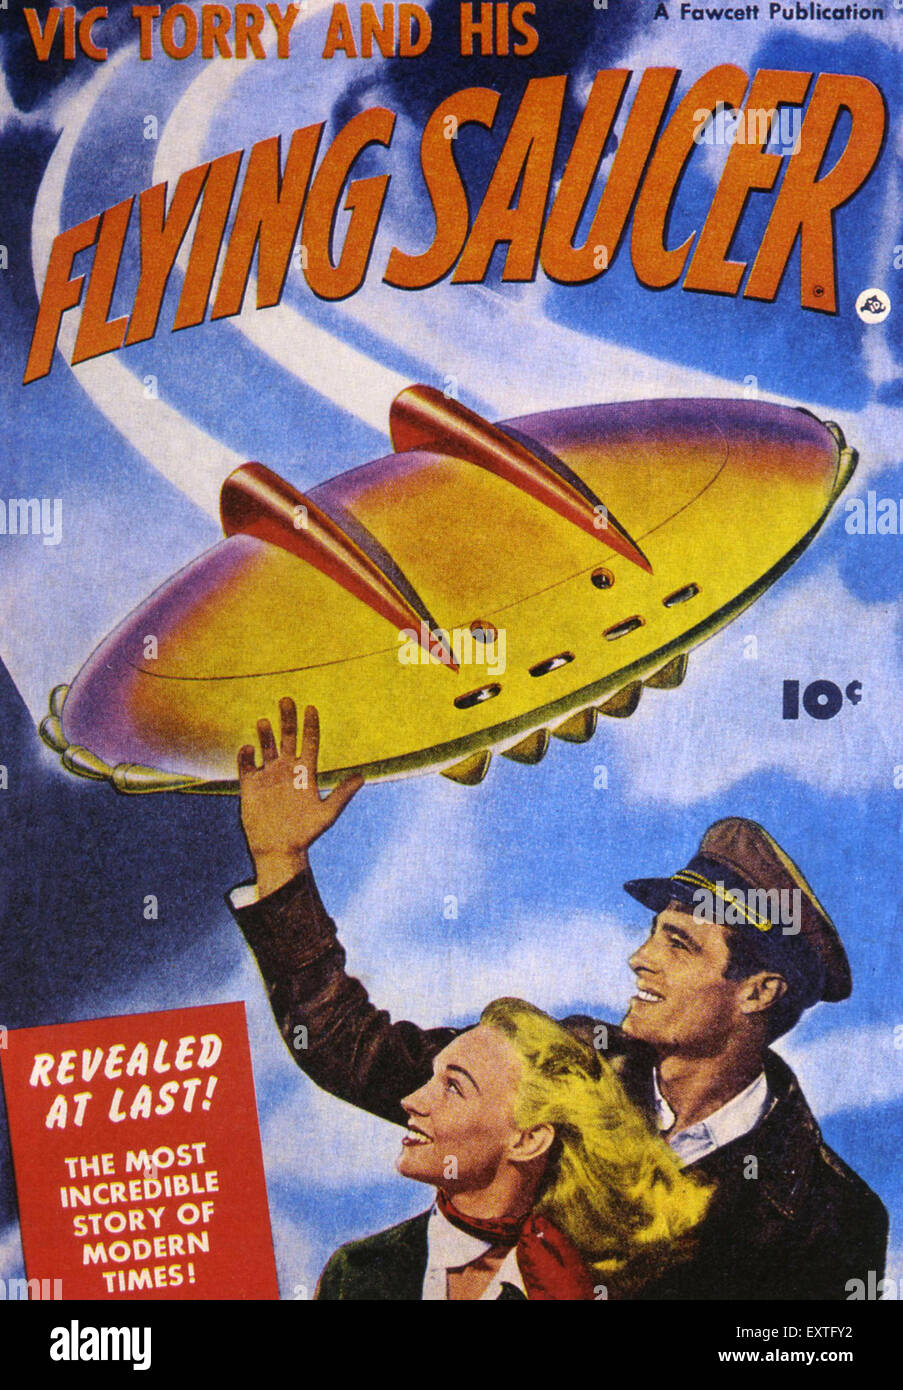 1950s USA Vic Torry and his Flying Saucer Magazine Cover - Stock Image